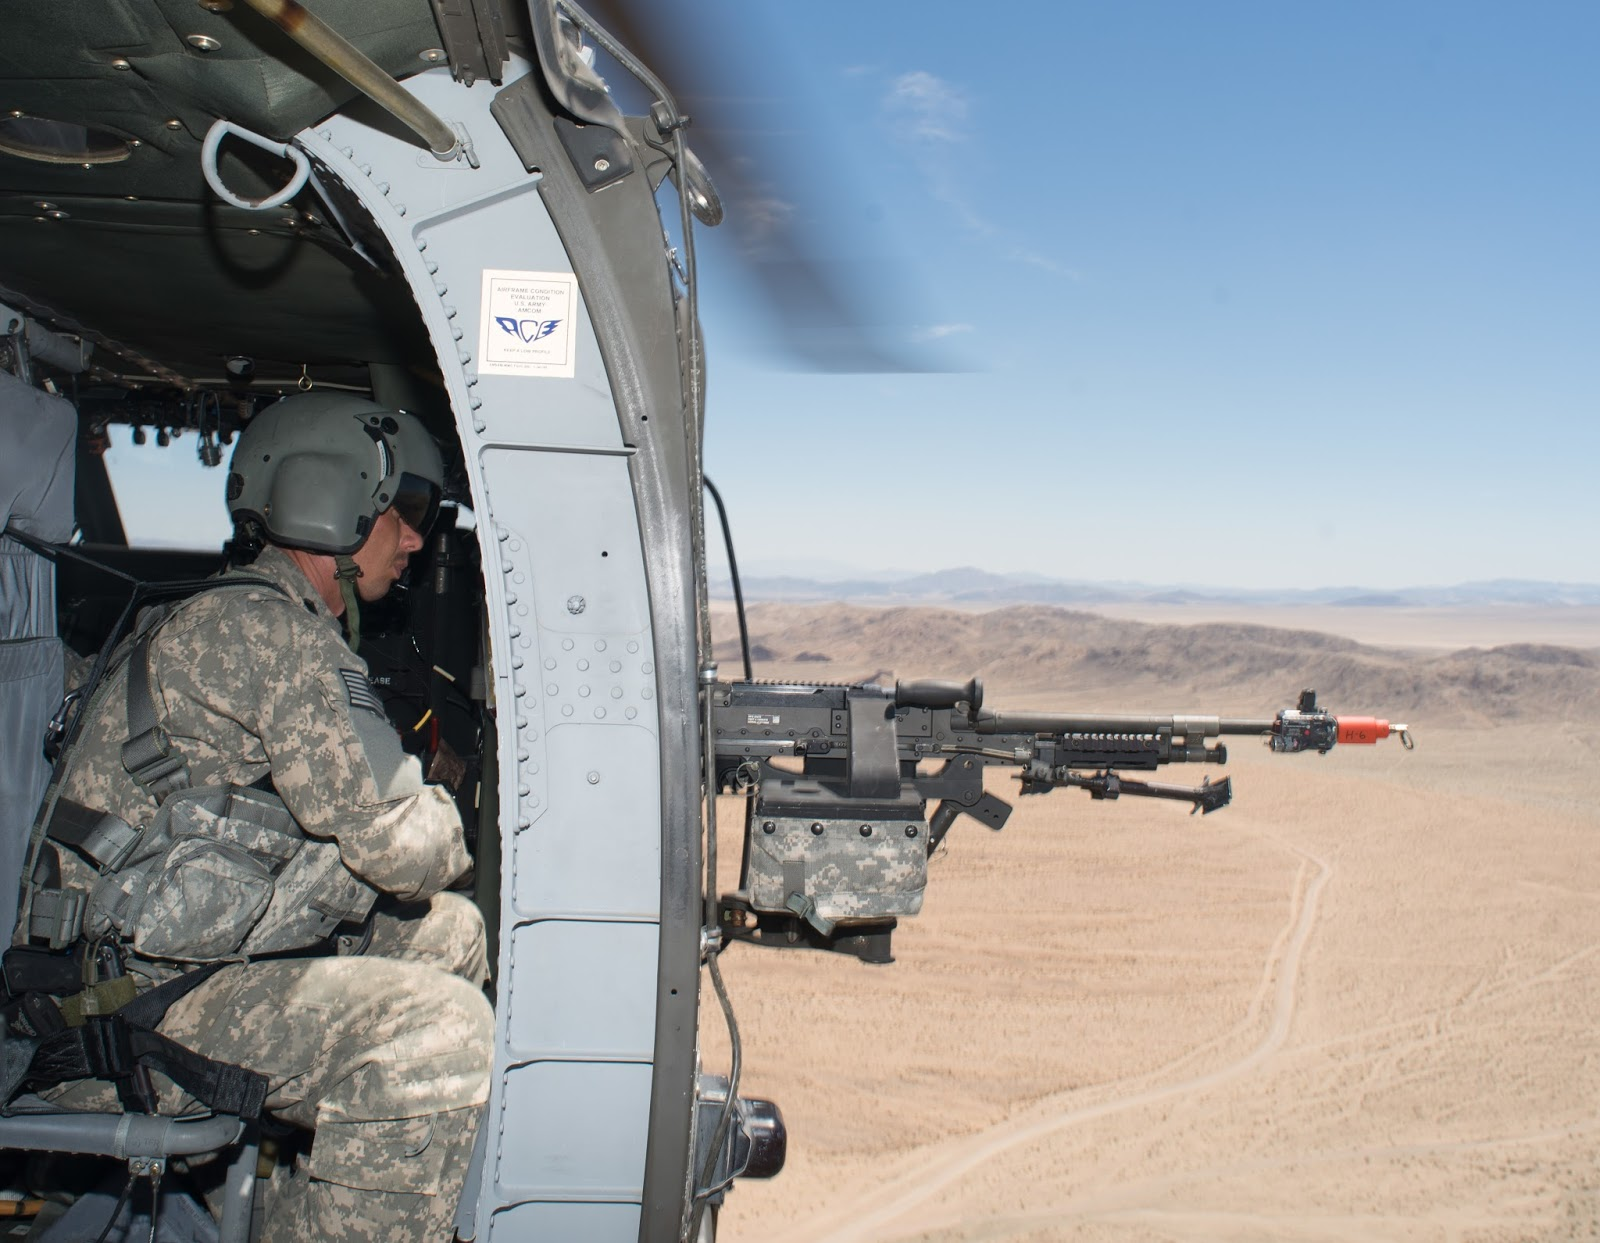 idaho army national guardsman sgt keo markwell crew chief from a company 1st battalion 183rd aviation reconnaissance battalion scans the terrain with